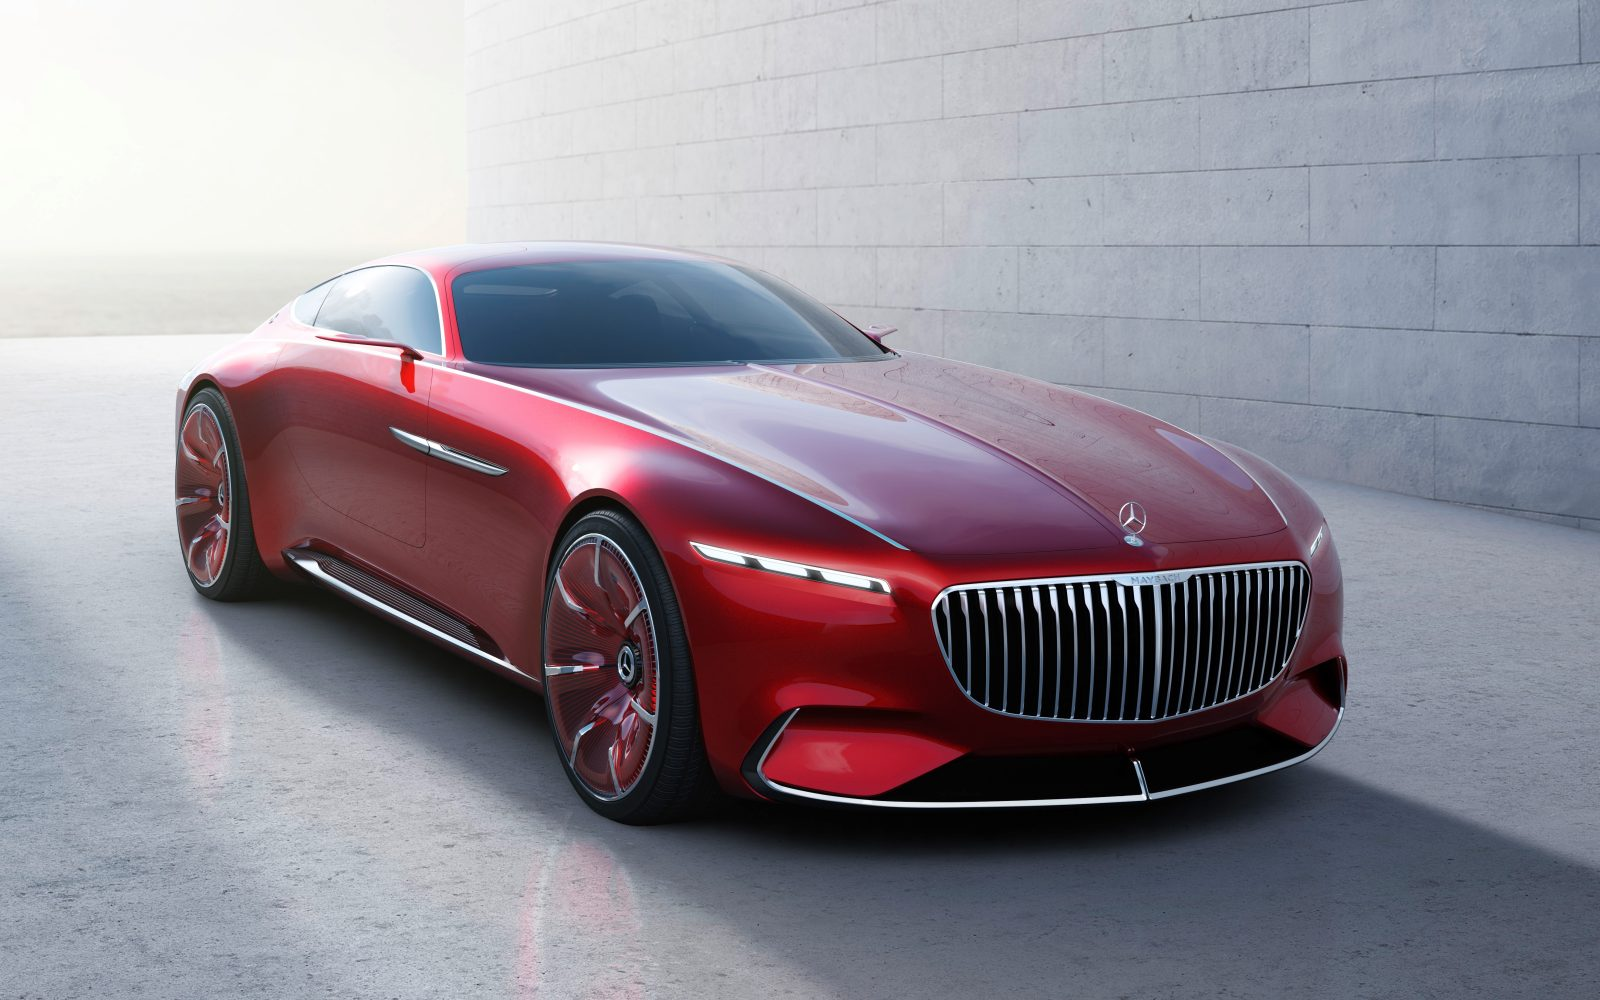 Mercedes unveils new all-electric luxury coupé concept with